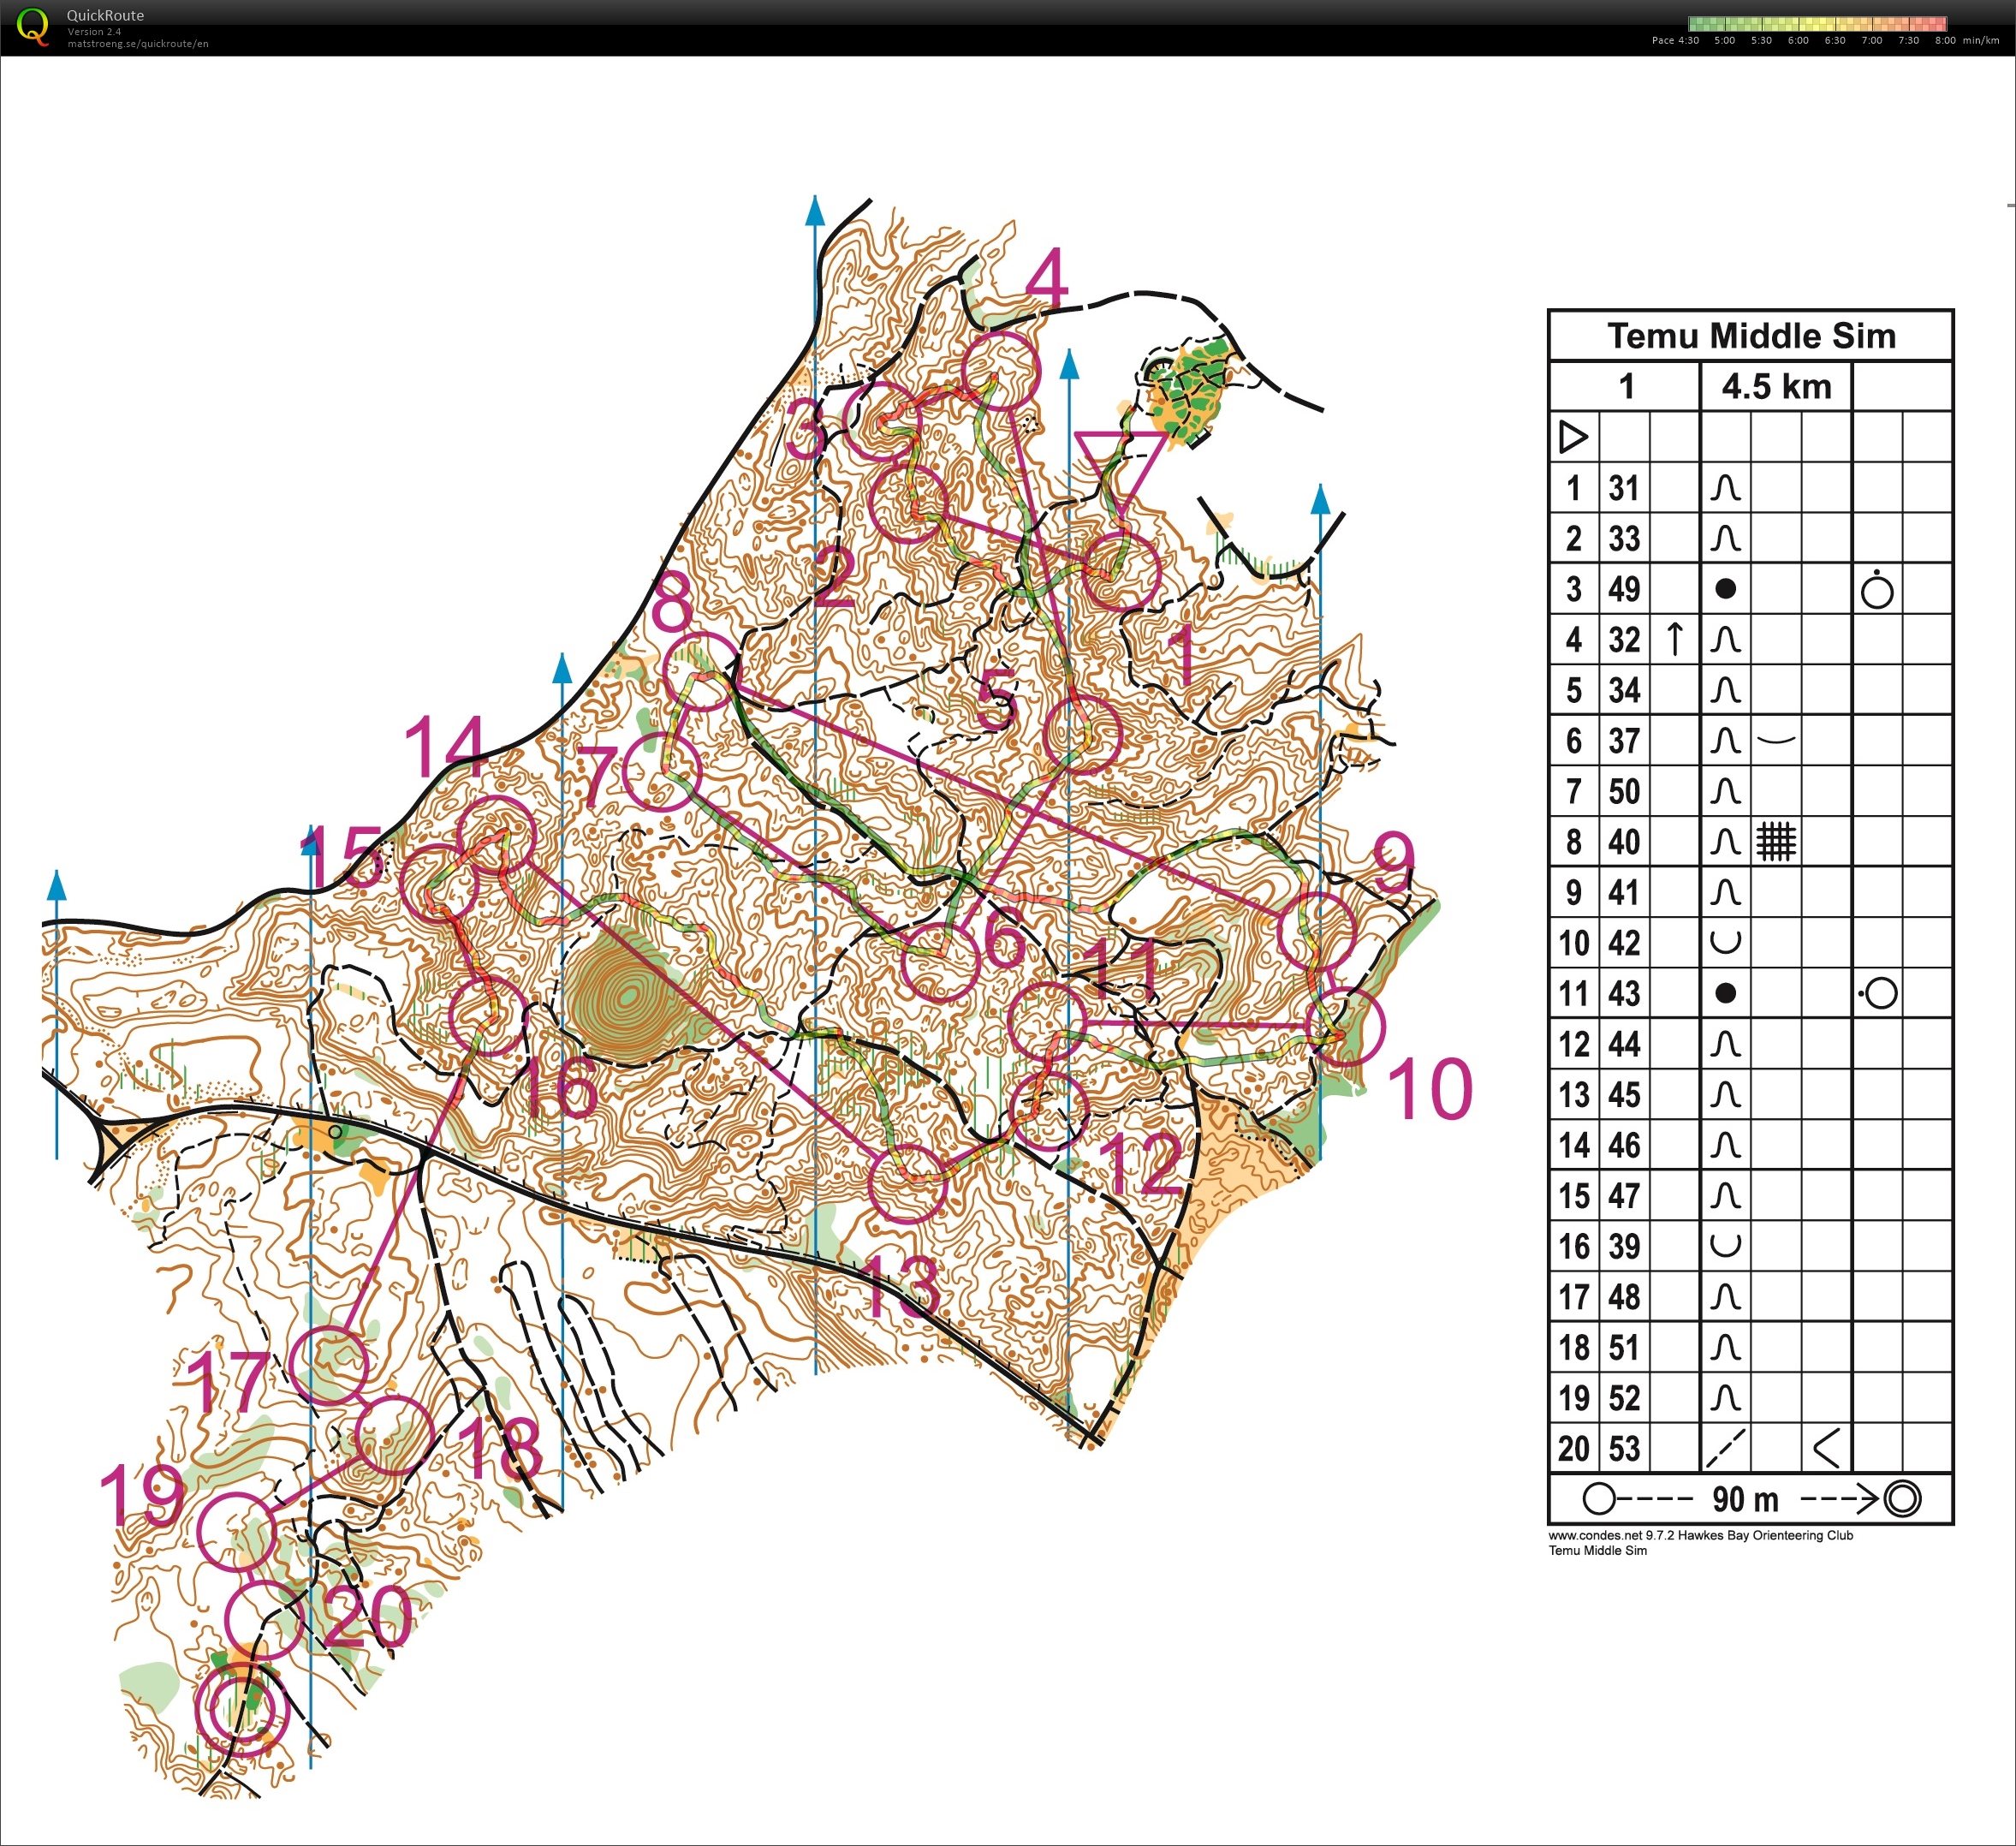 Devon Middle Sim (World Orienteering Day) (2018-05-25)